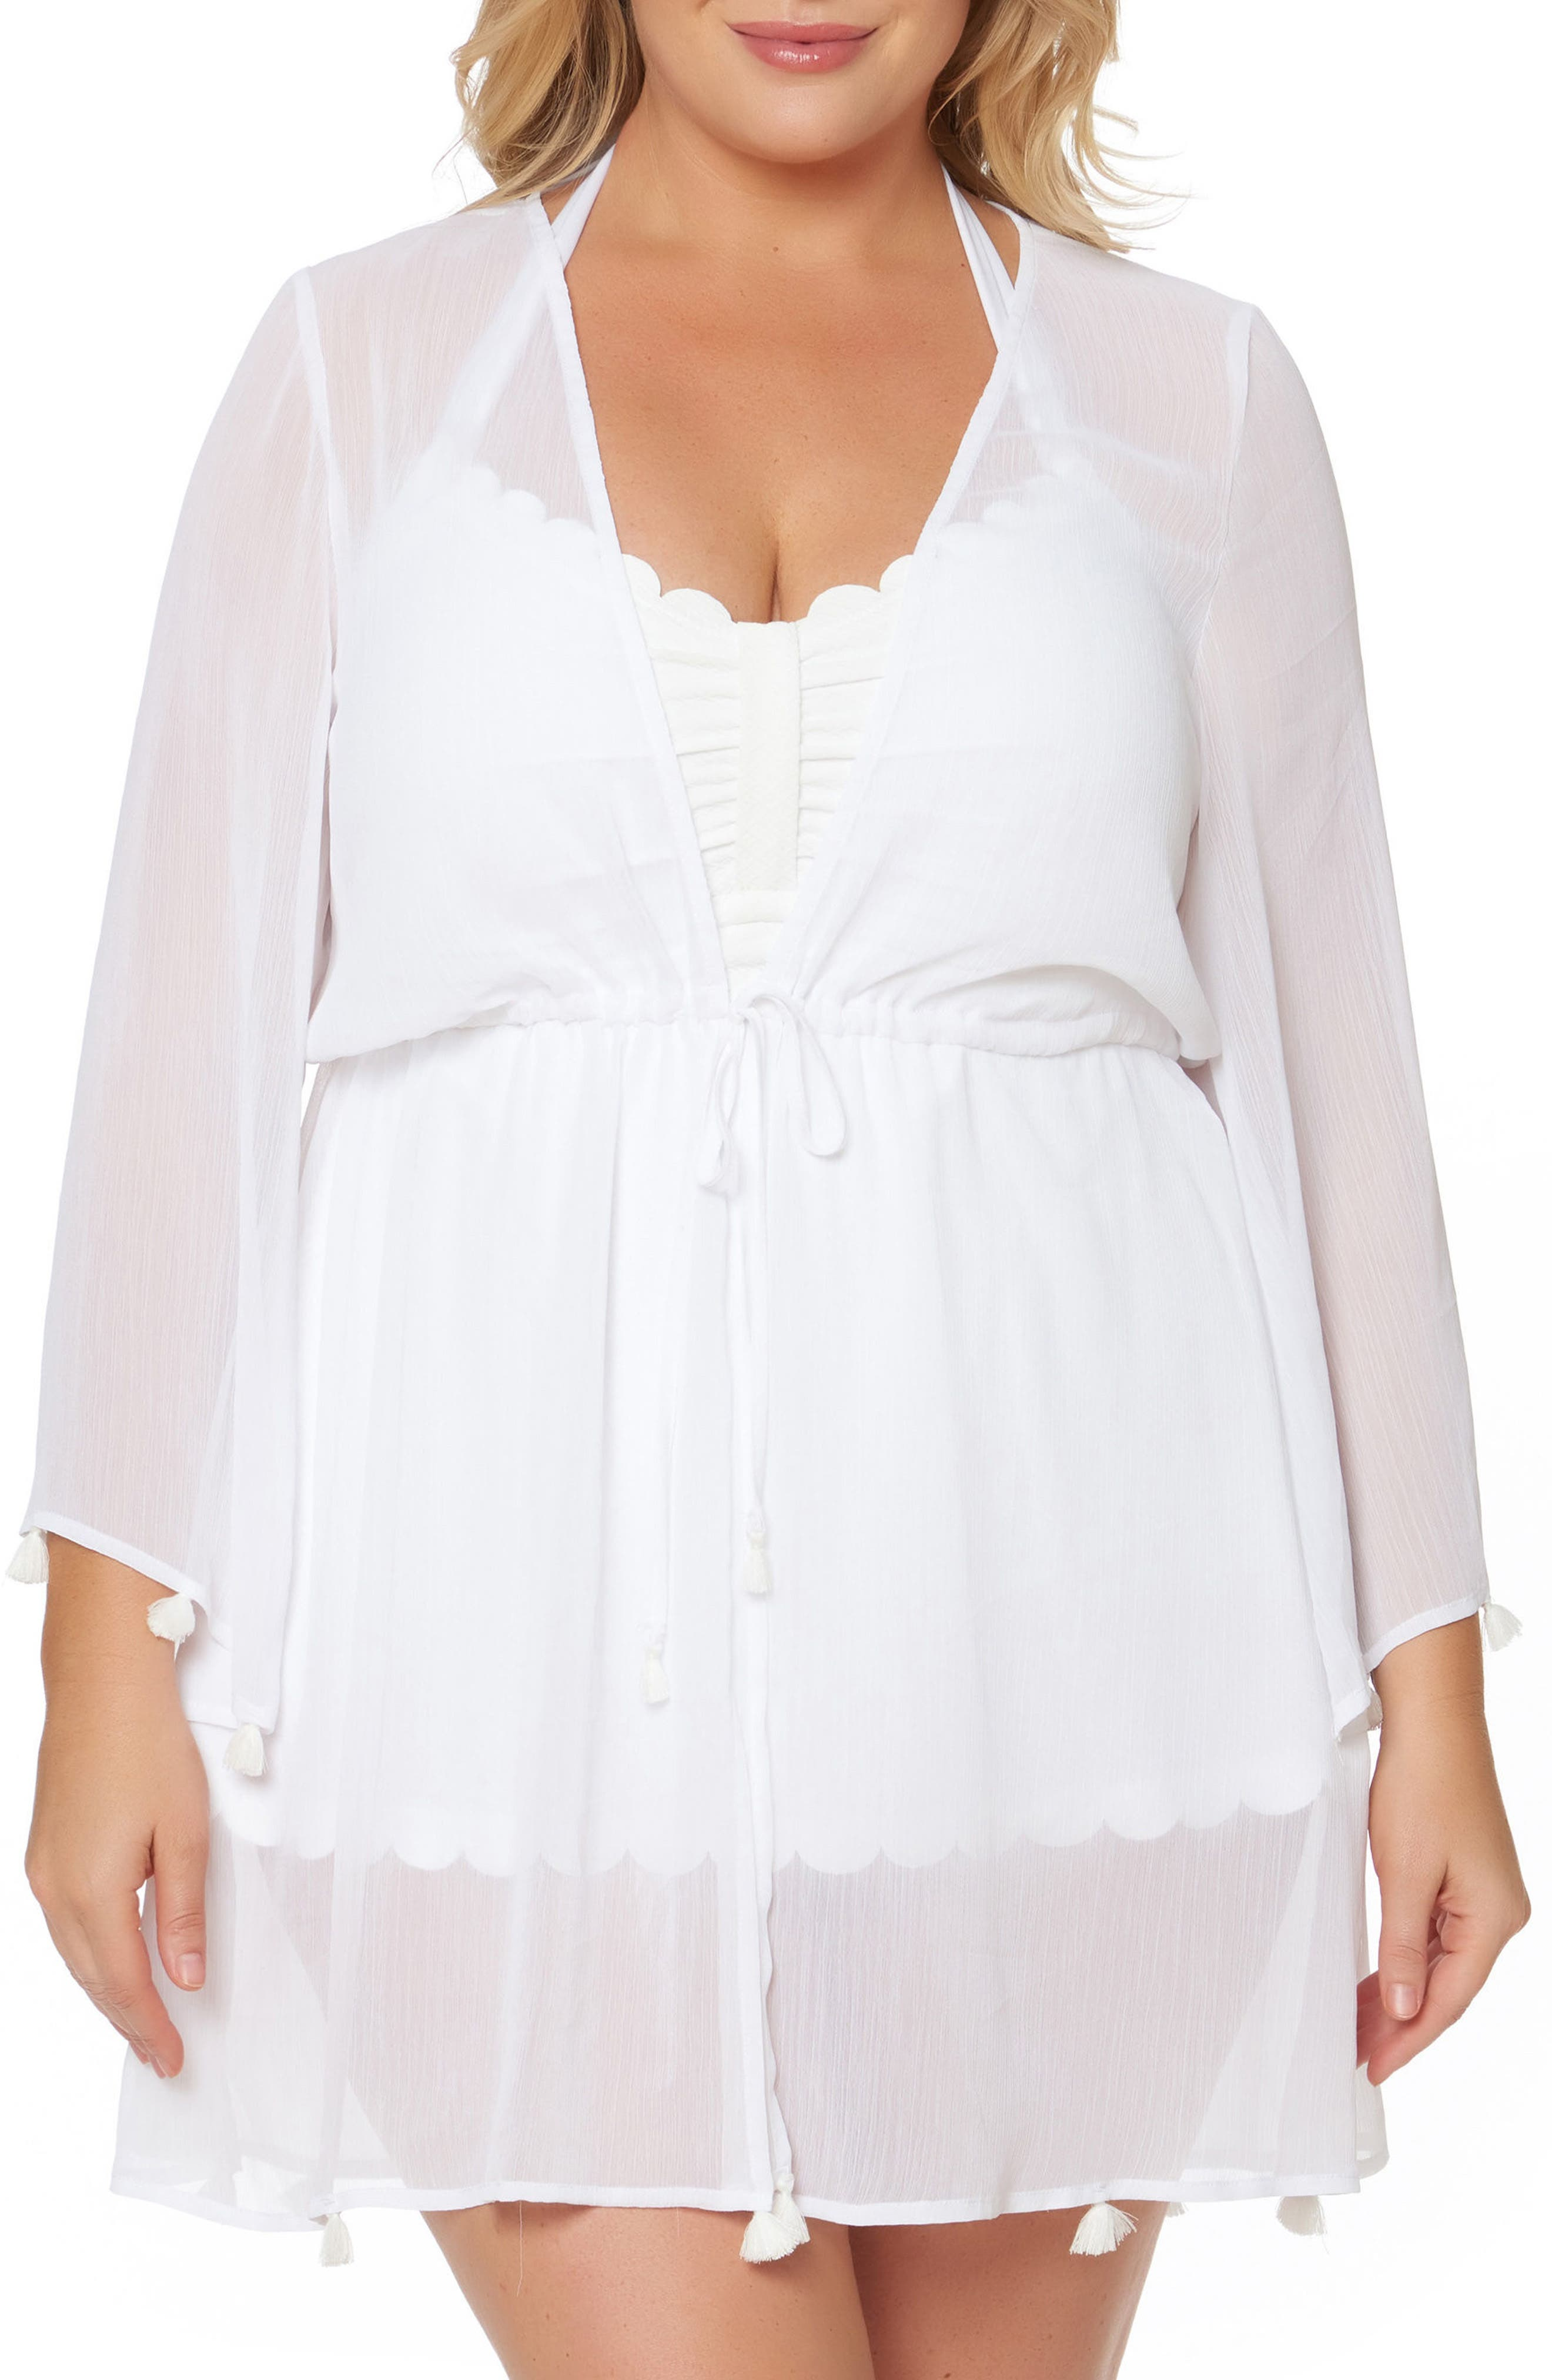 Chiffon Cover-Up Kimono,                         Main,                         color, White